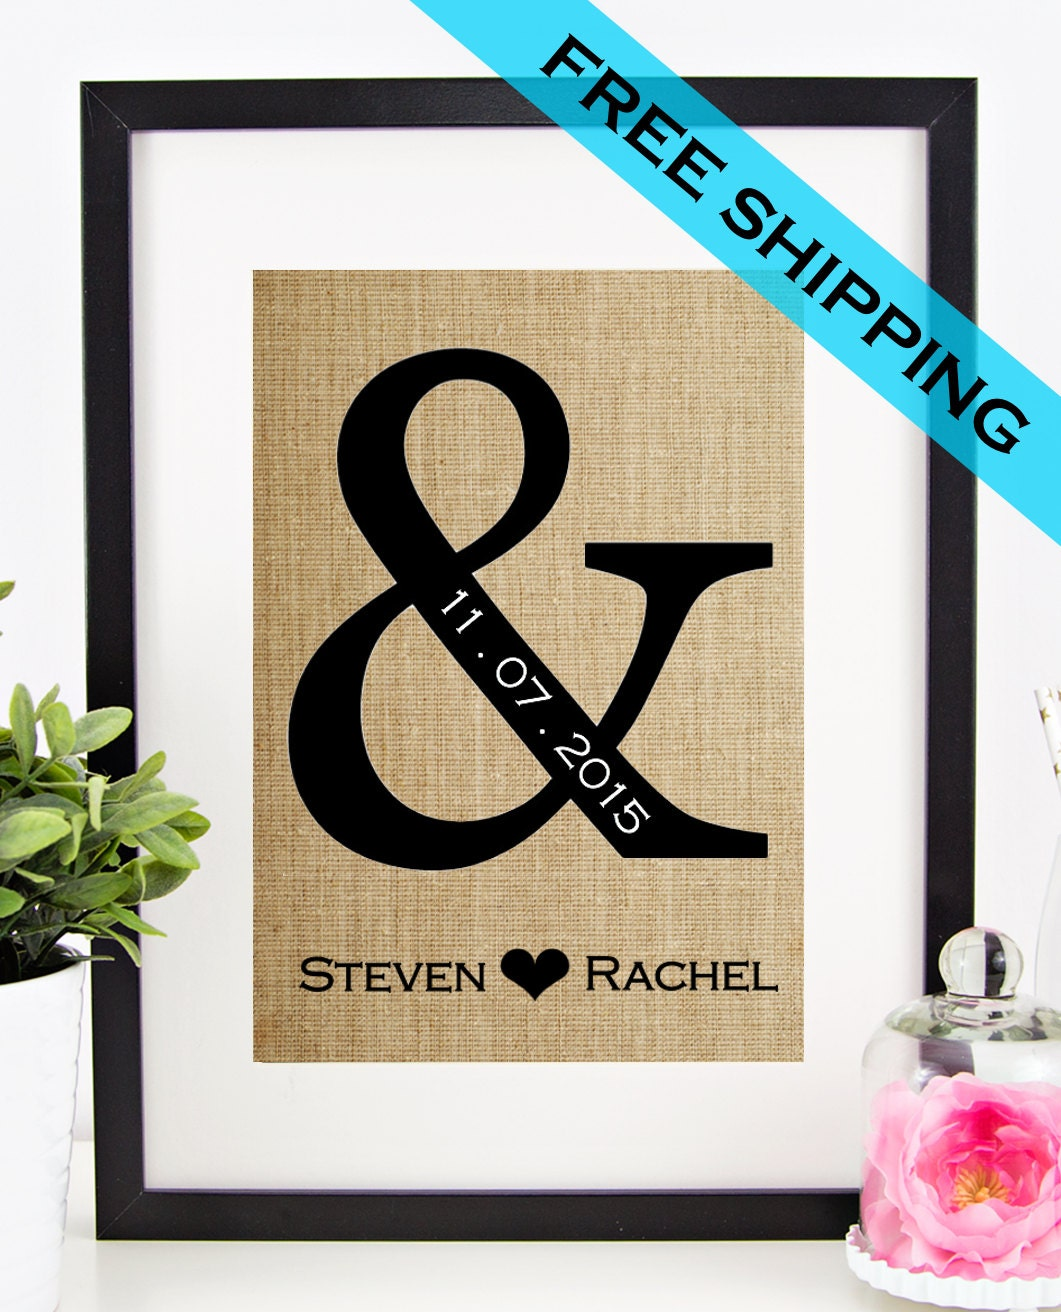 Appropriate Wedding Gifts For Older Couples : Personalized Wedding Gift for Couple Bridal Shower Gift